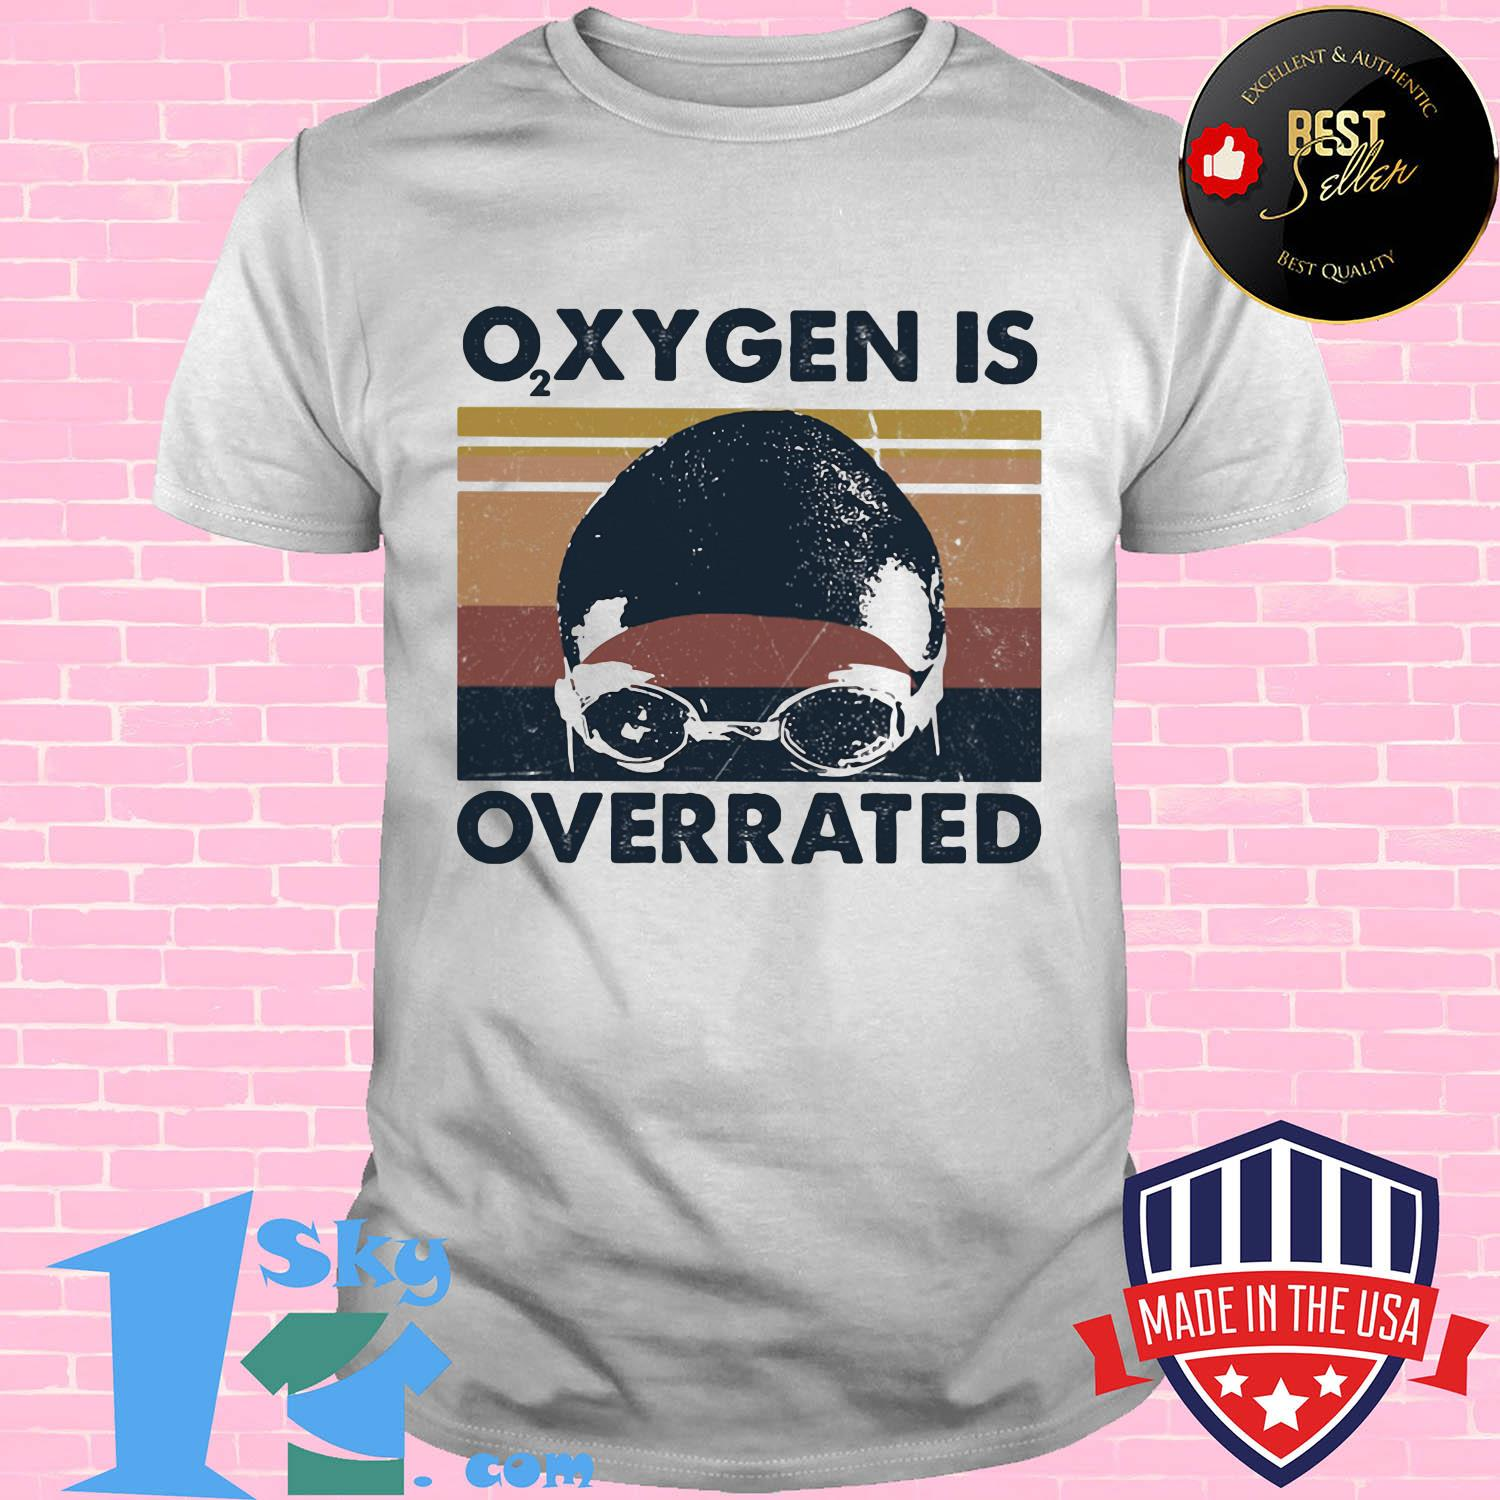 Swimming Oxygen is overrated vintage shirt